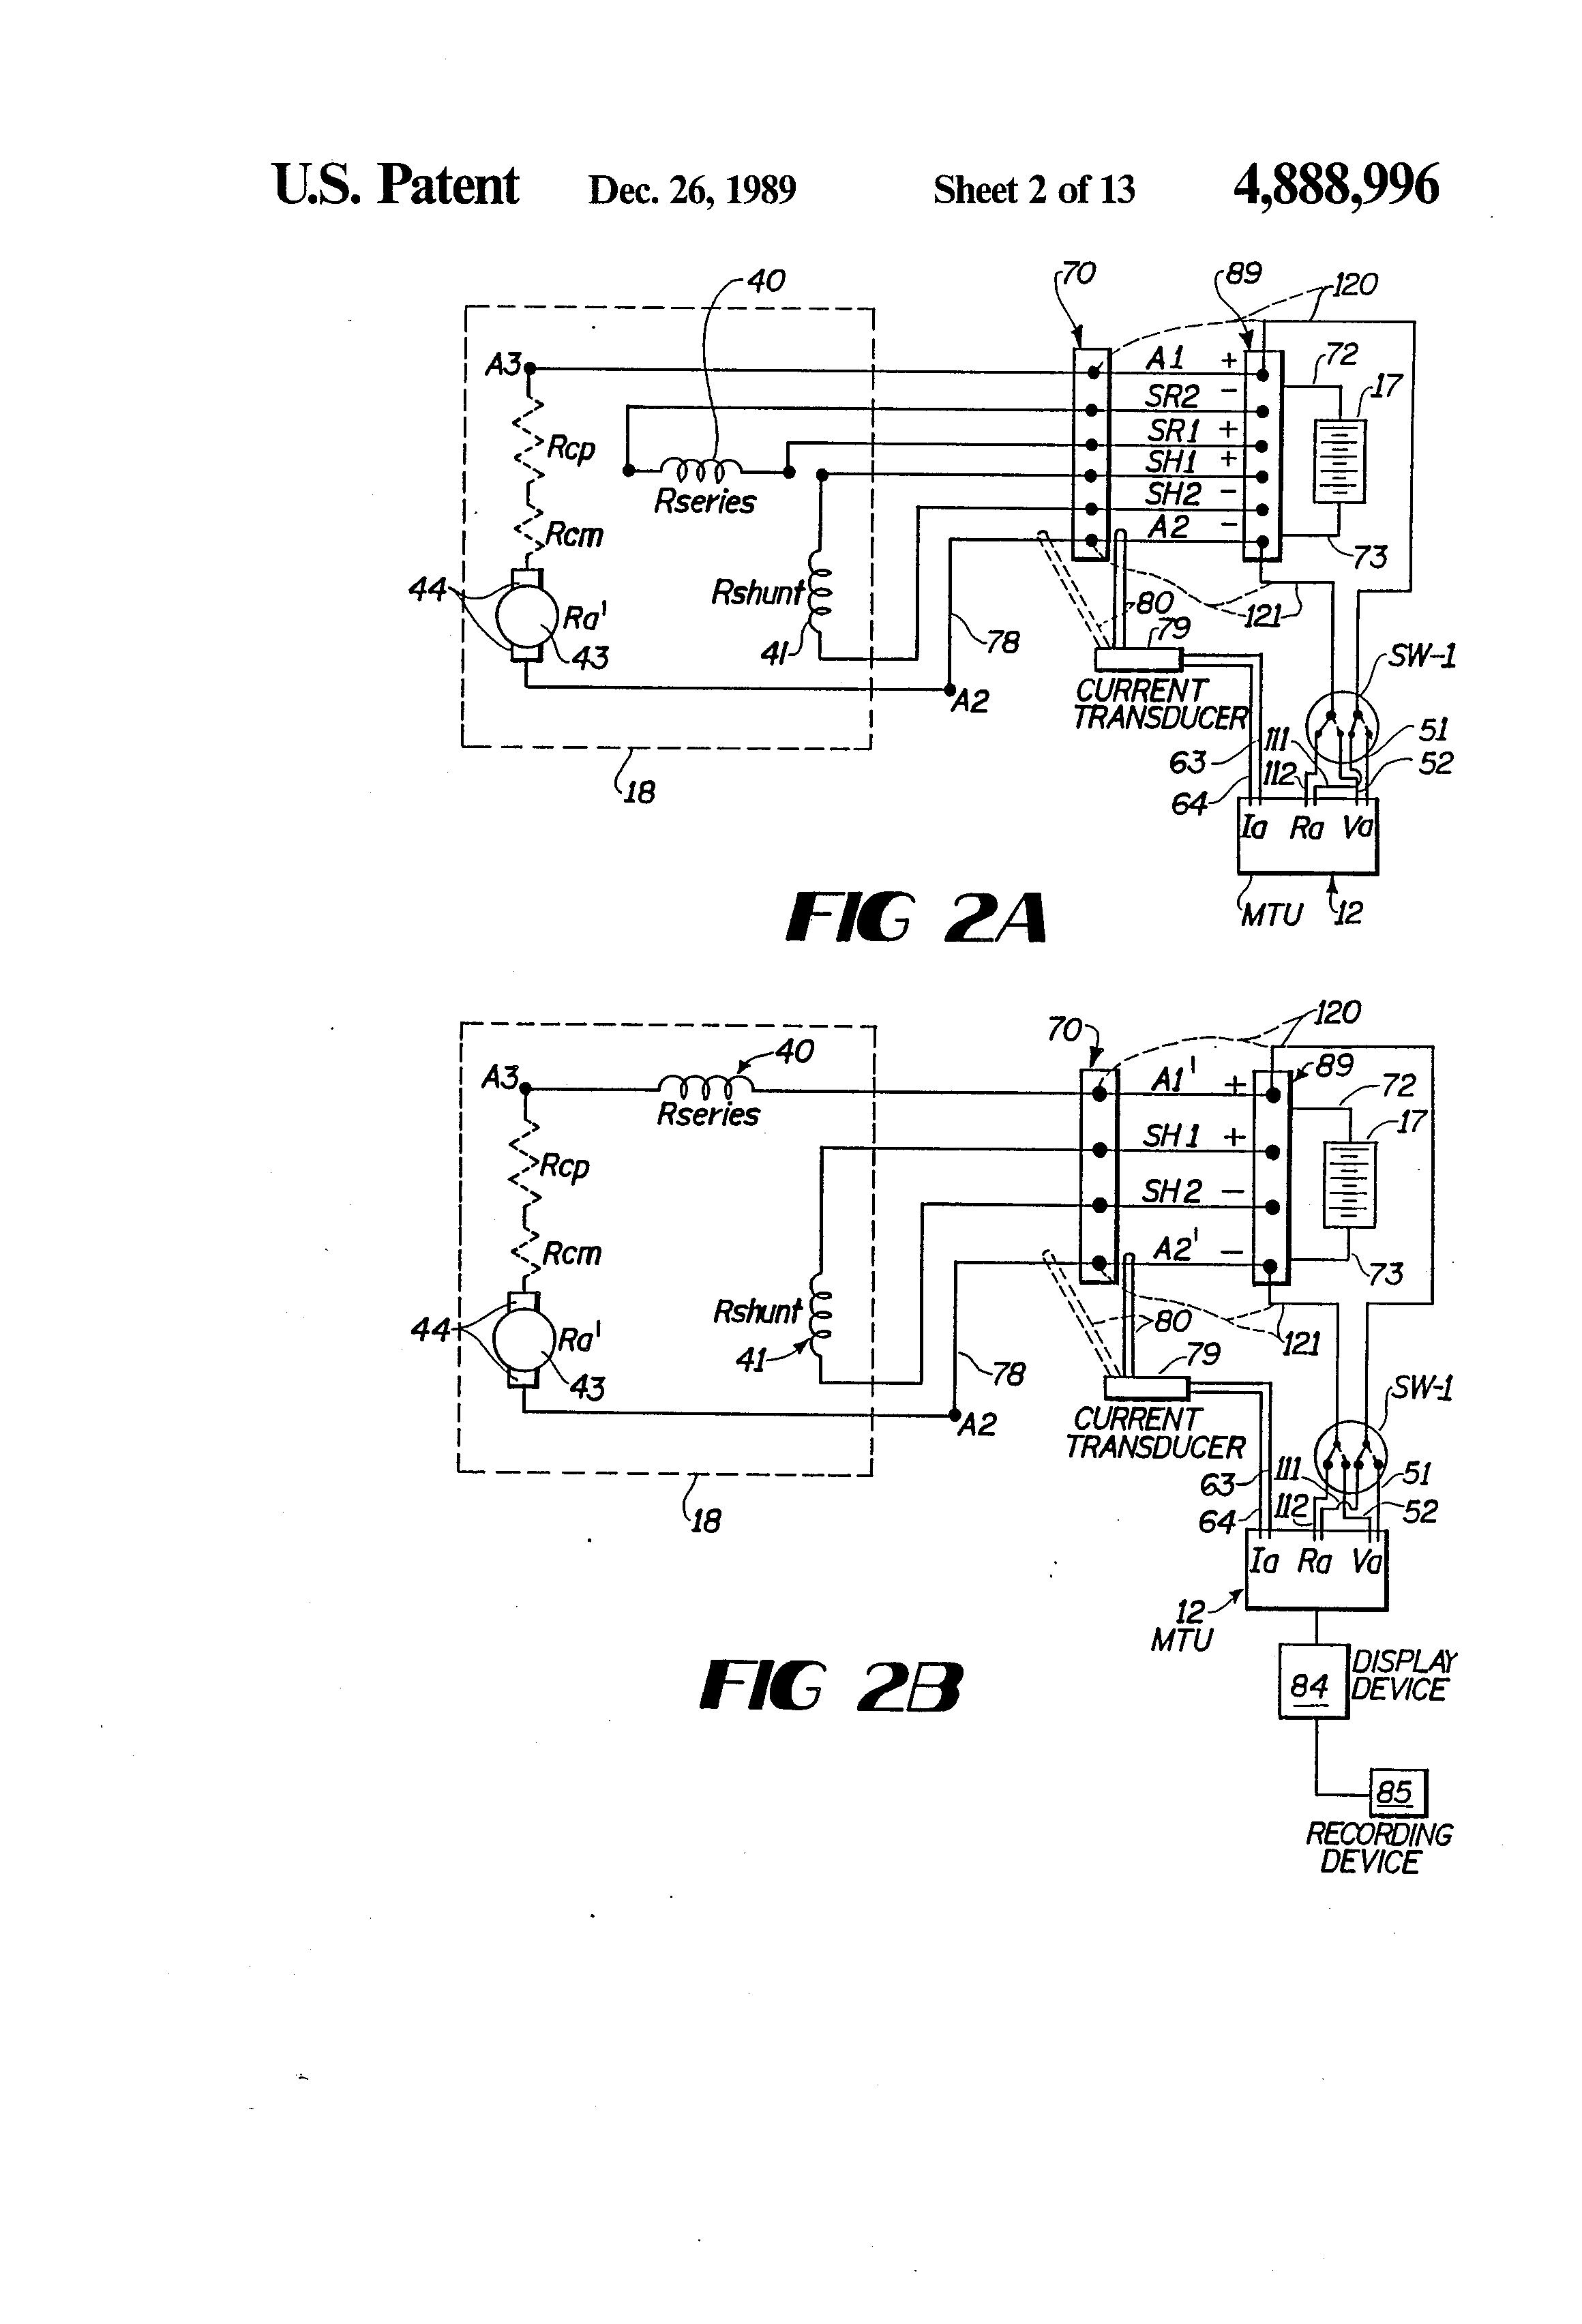 Rotork Actuator Wiring Diagram furthermore 1355994073 furthermore US5097857 also Limitorque Wiring Diagrams further US8118276. on rotork actuators and control diagram